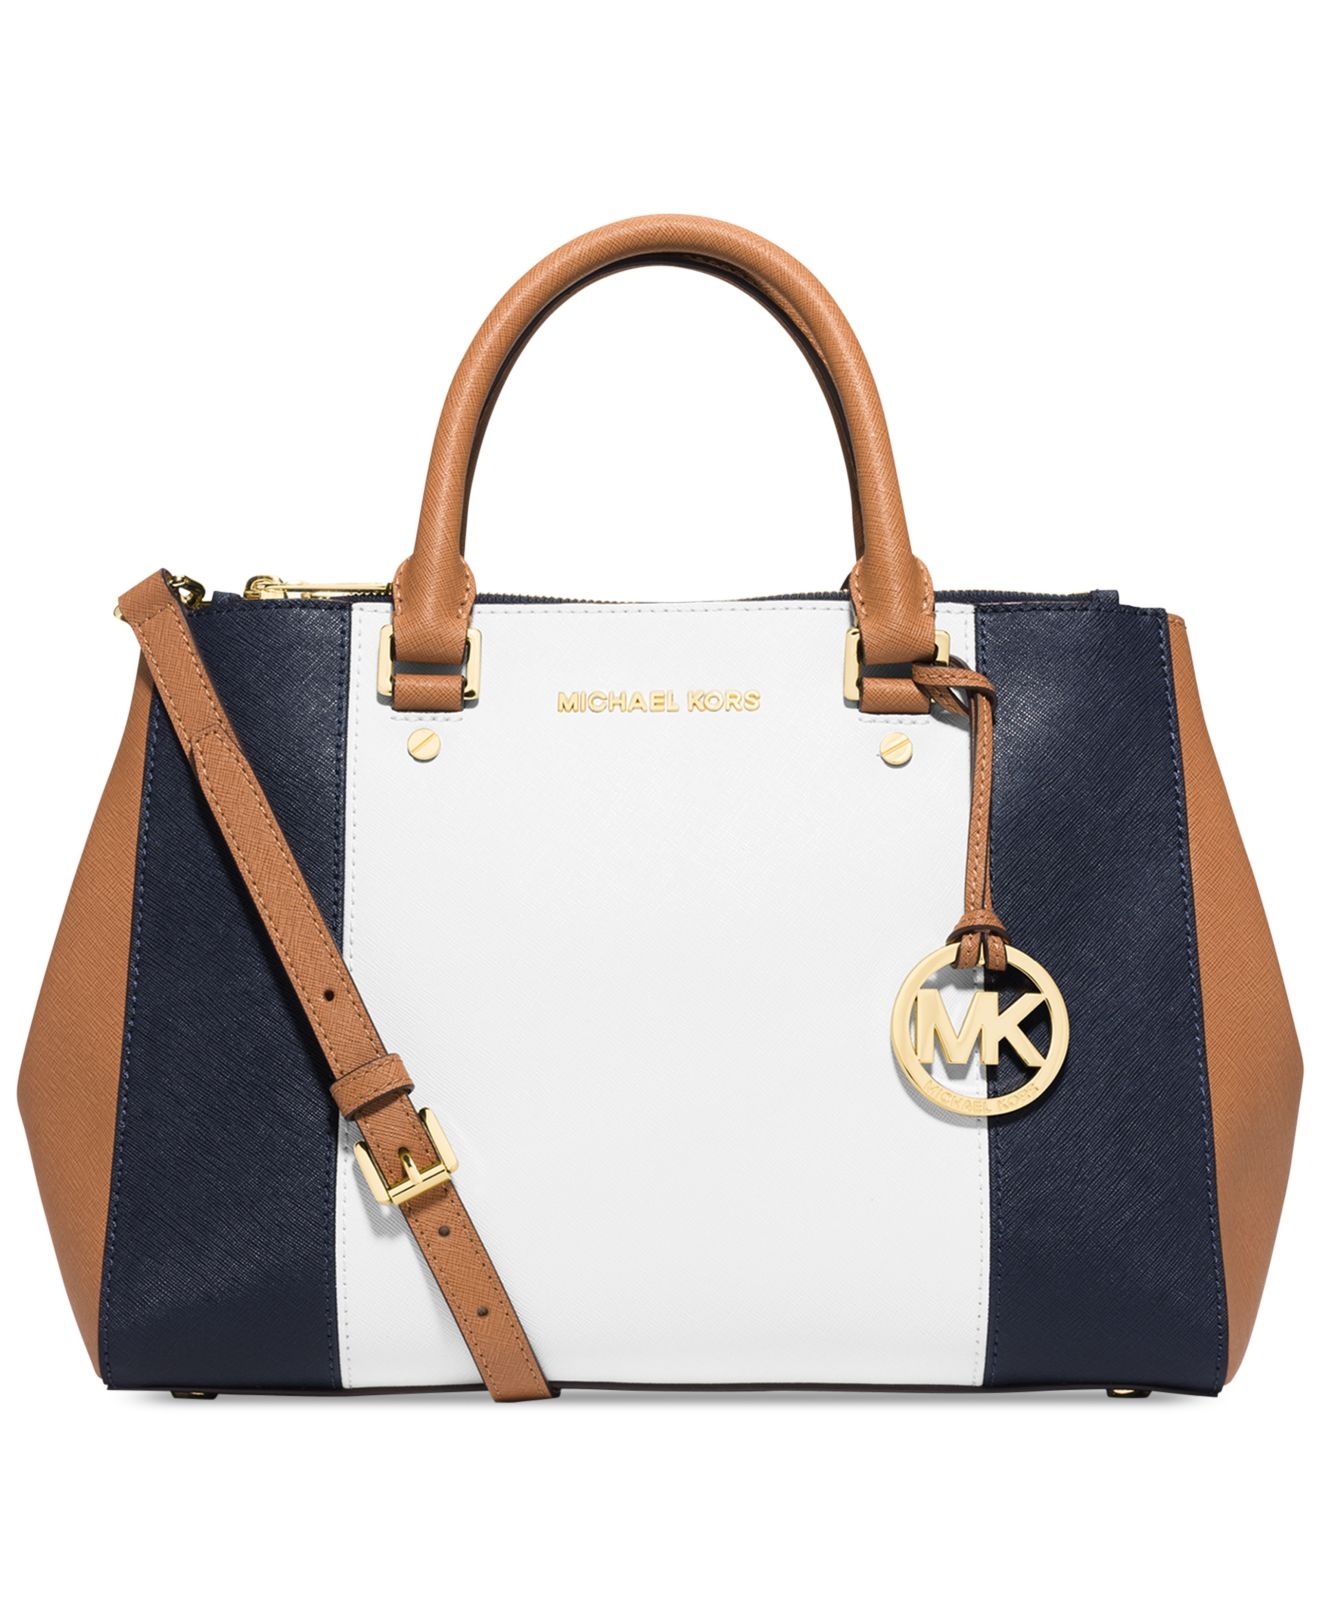 711da82c54 ... new zealand lyst michael kors michael sutton center stripe medium  satchel in white 48550 36332